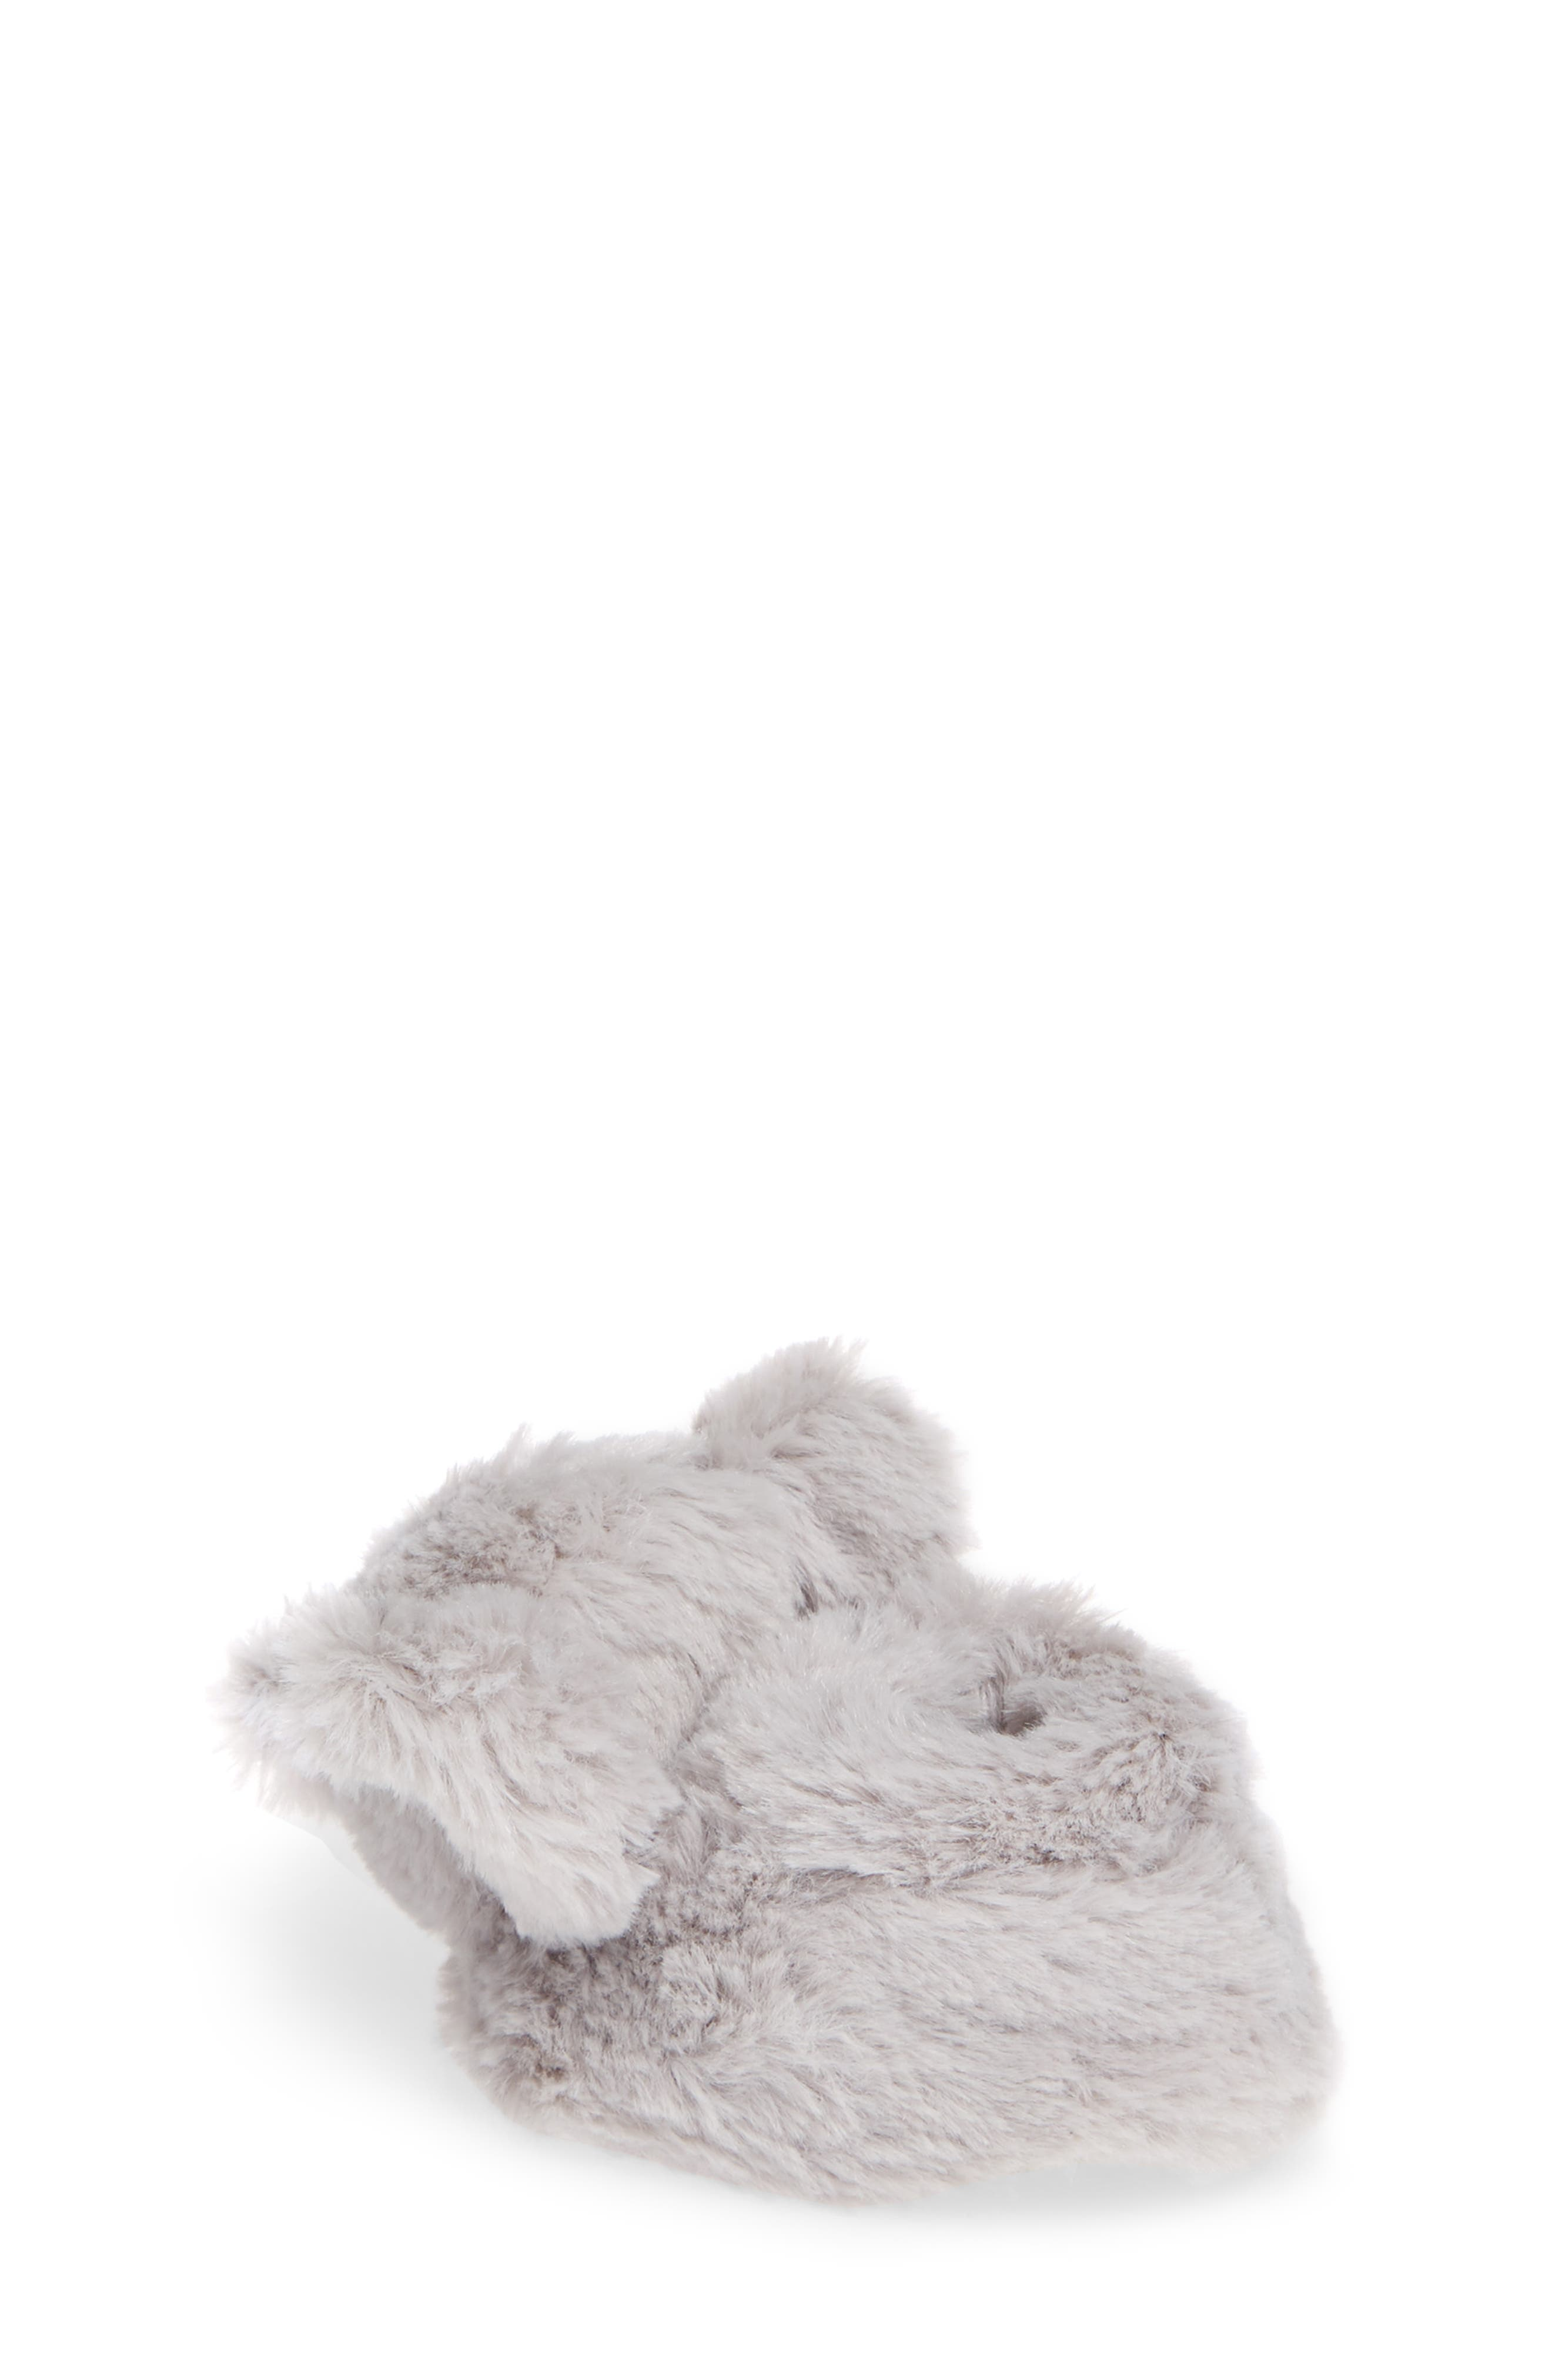 Faux Fur Animal Slipper,                             Alternate thumbnail 2, color,                             GREY ELEPHANT